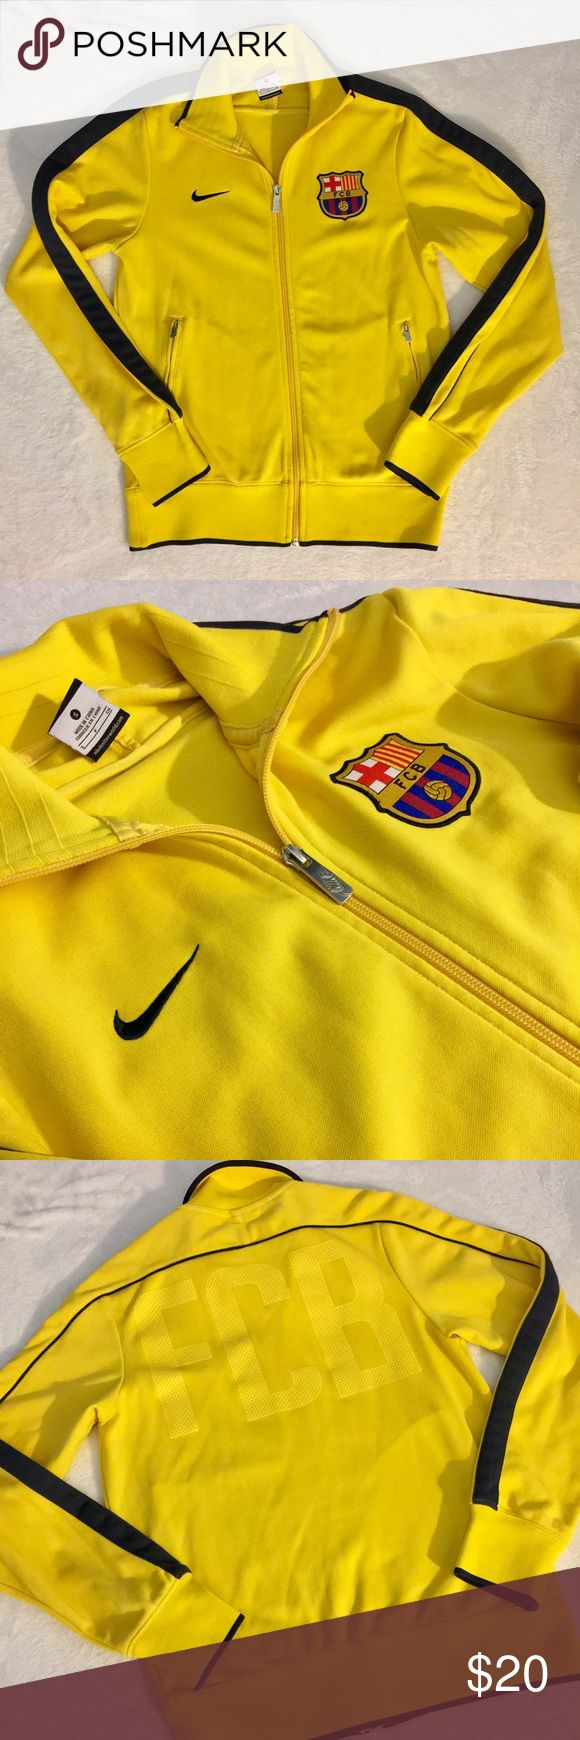 NIKE FC Barcelona training jacket Clean, size small, rarely used training jacket. 53% polyester, 47% cotton. Nike Sweaters